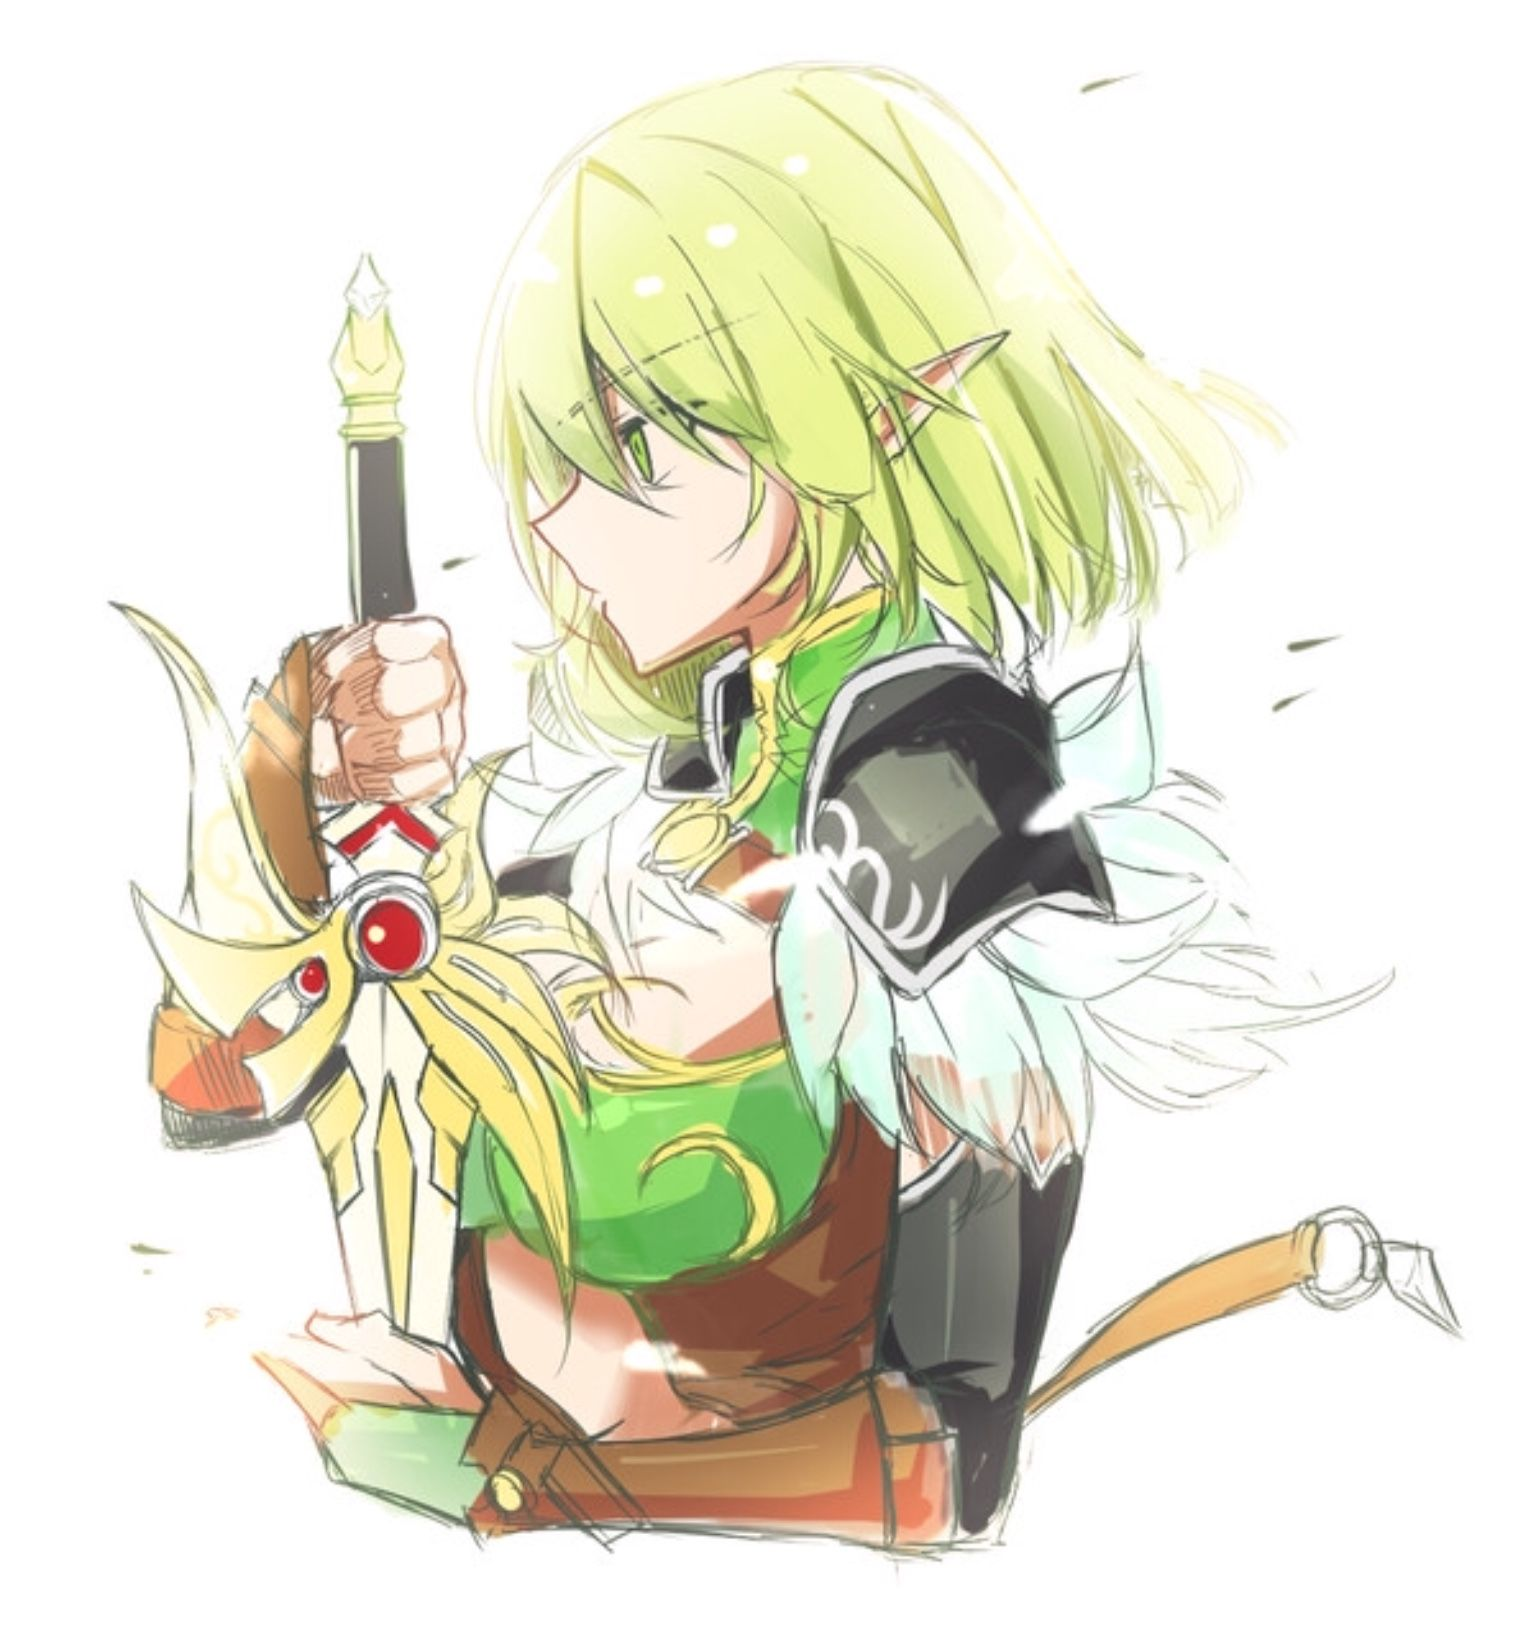 Find This Pin And More On Elsword By Kaiisama